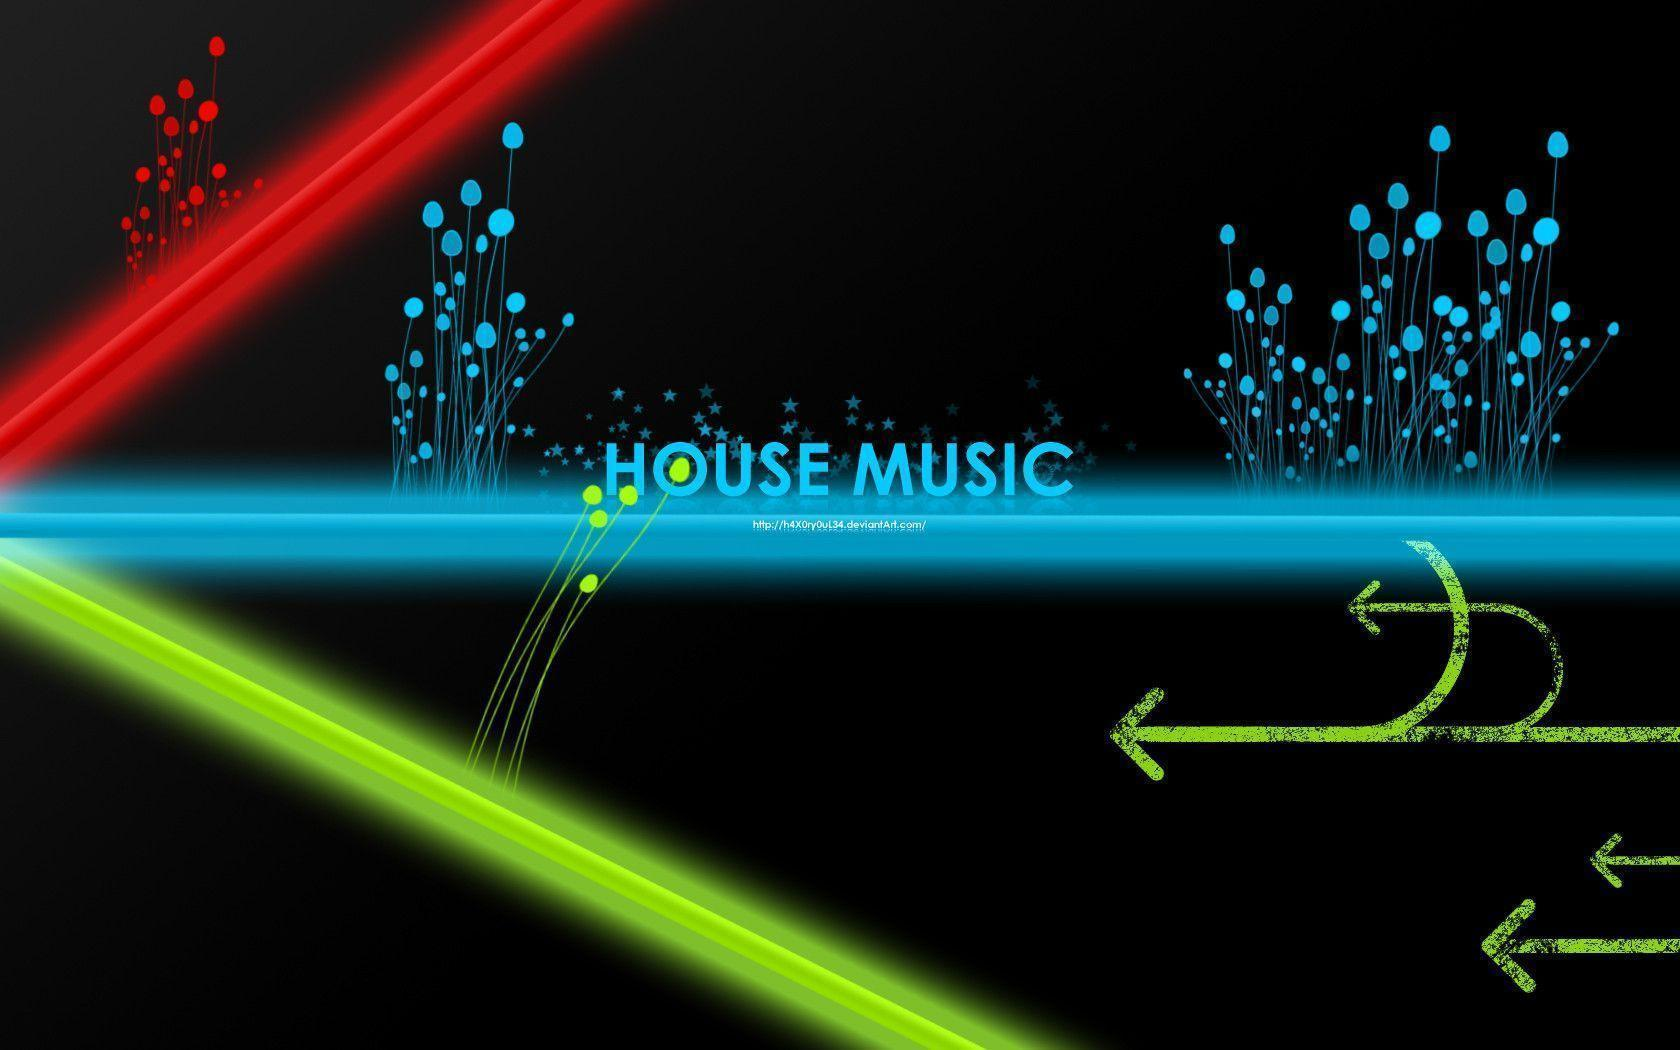 Wallpapers House Music